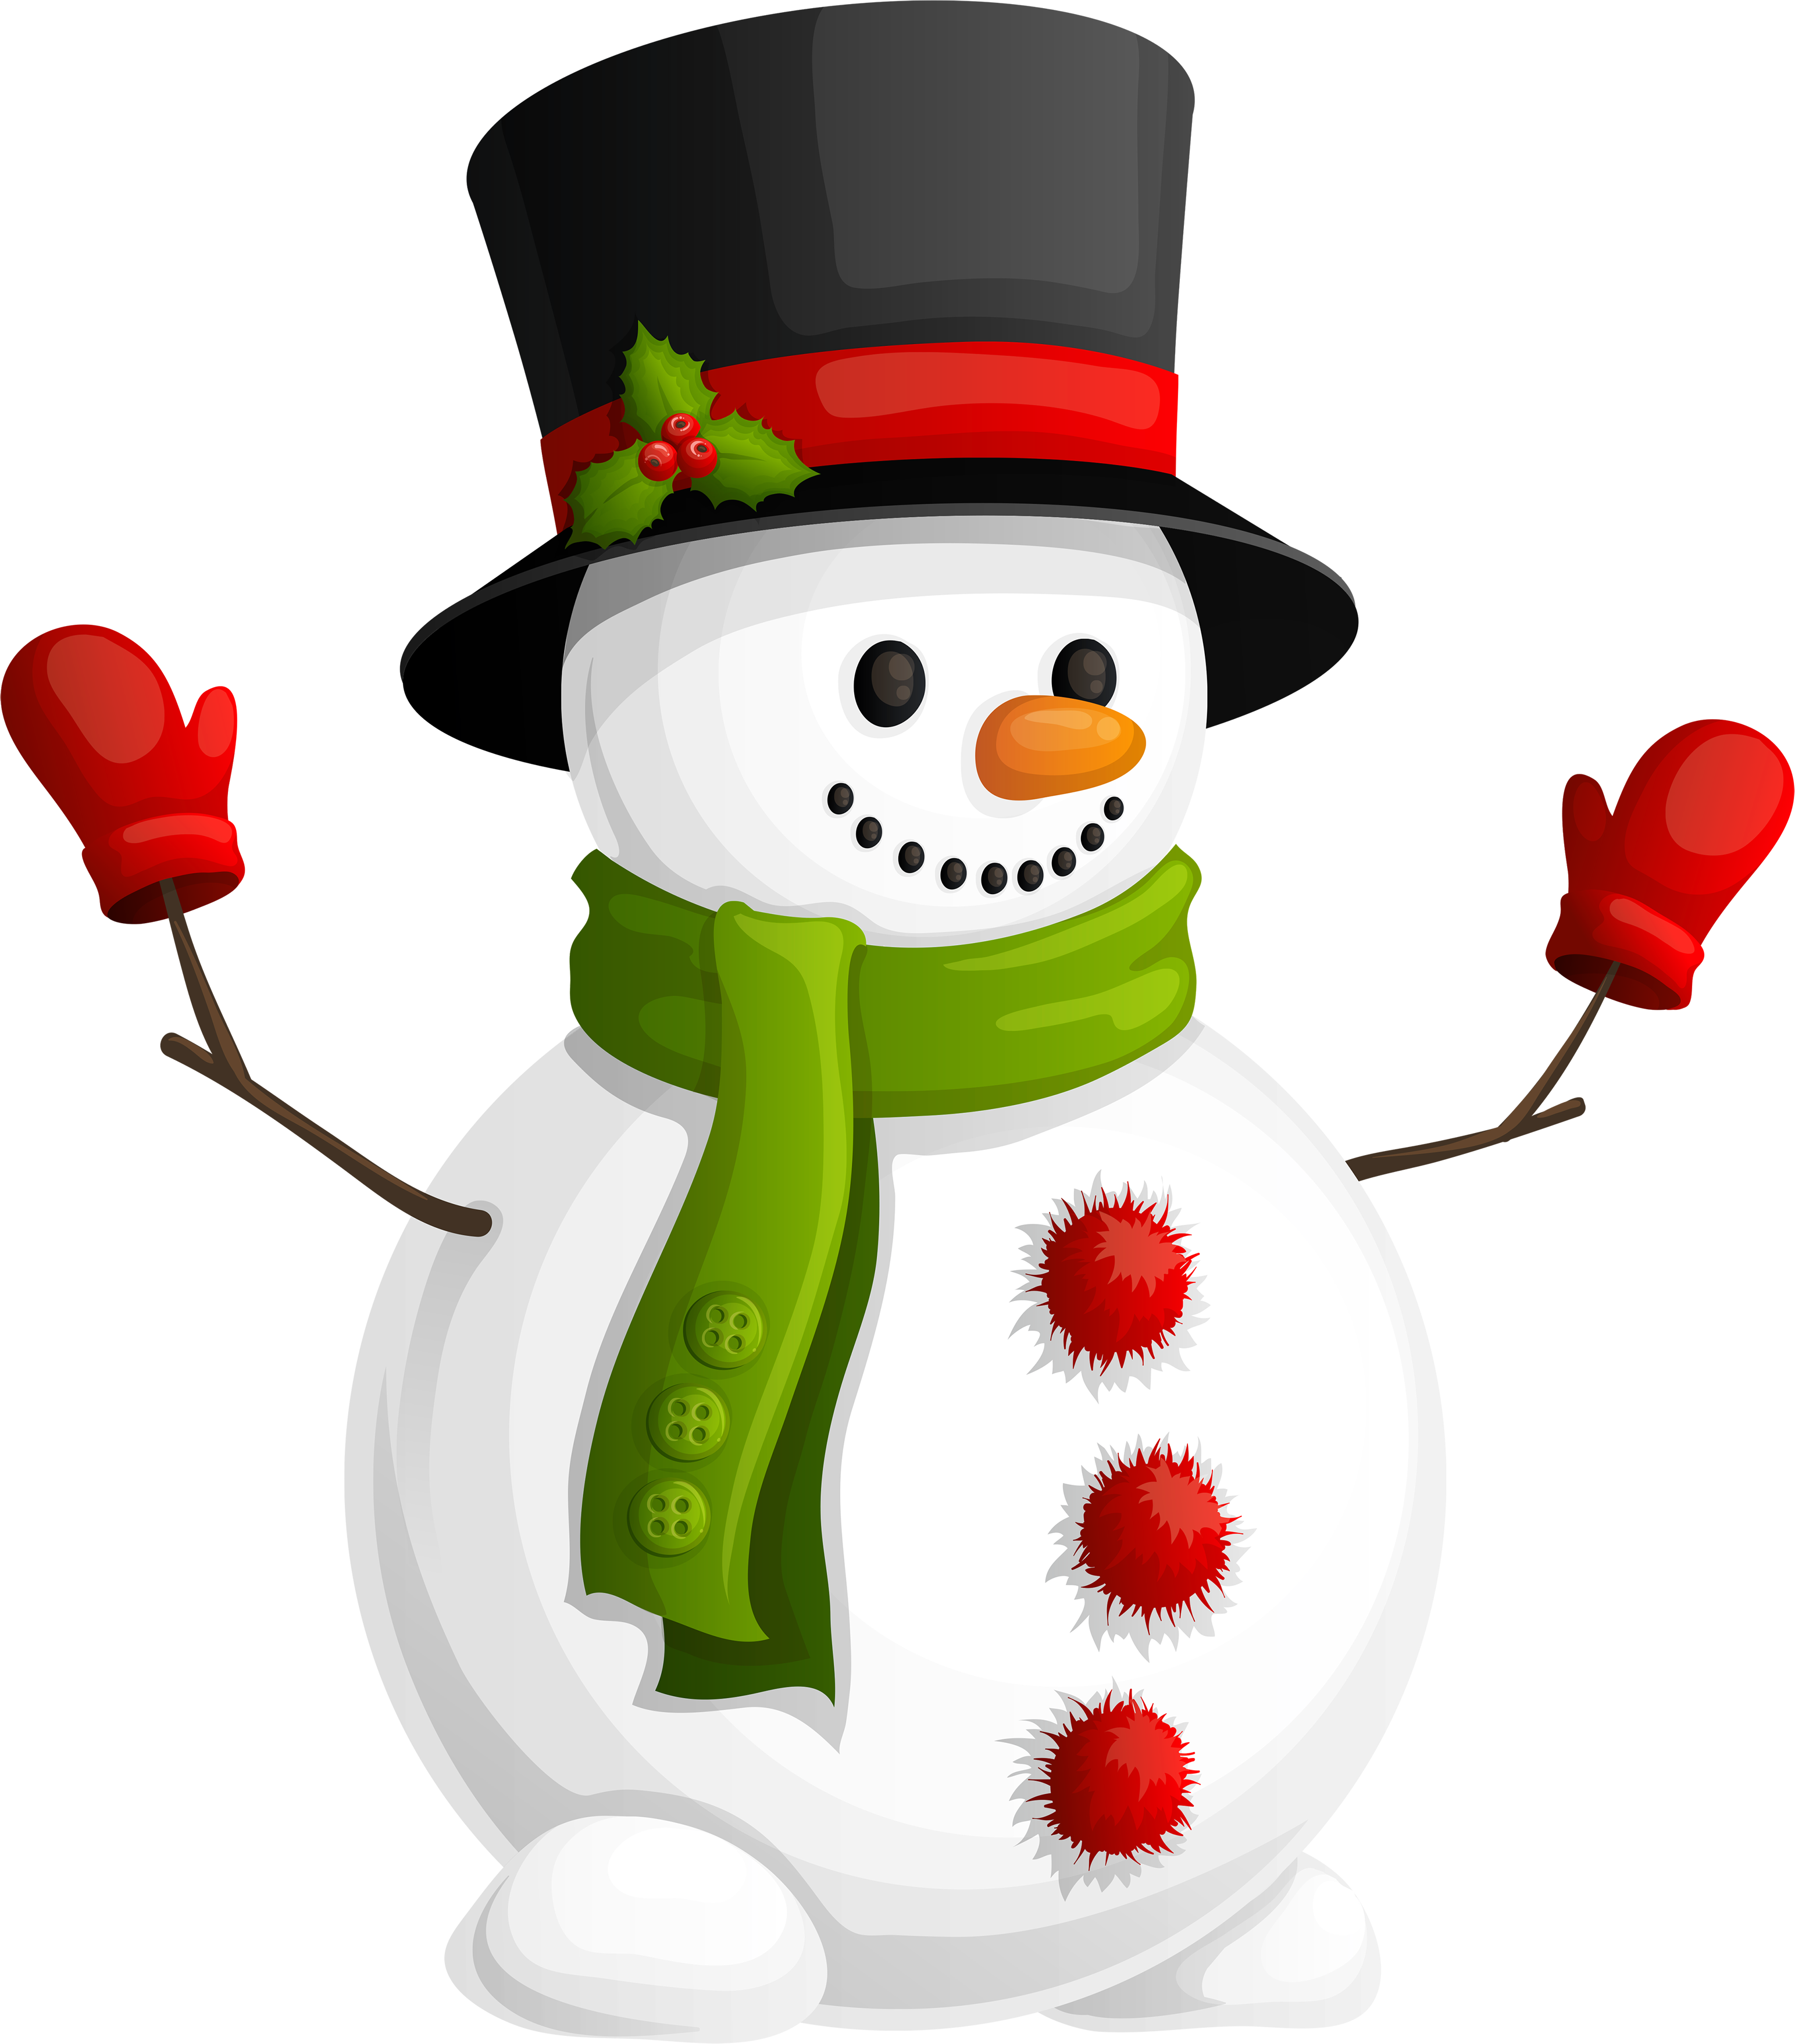 Snowman Png Images Free Download Snowman Images Christmas Crafty Snowman